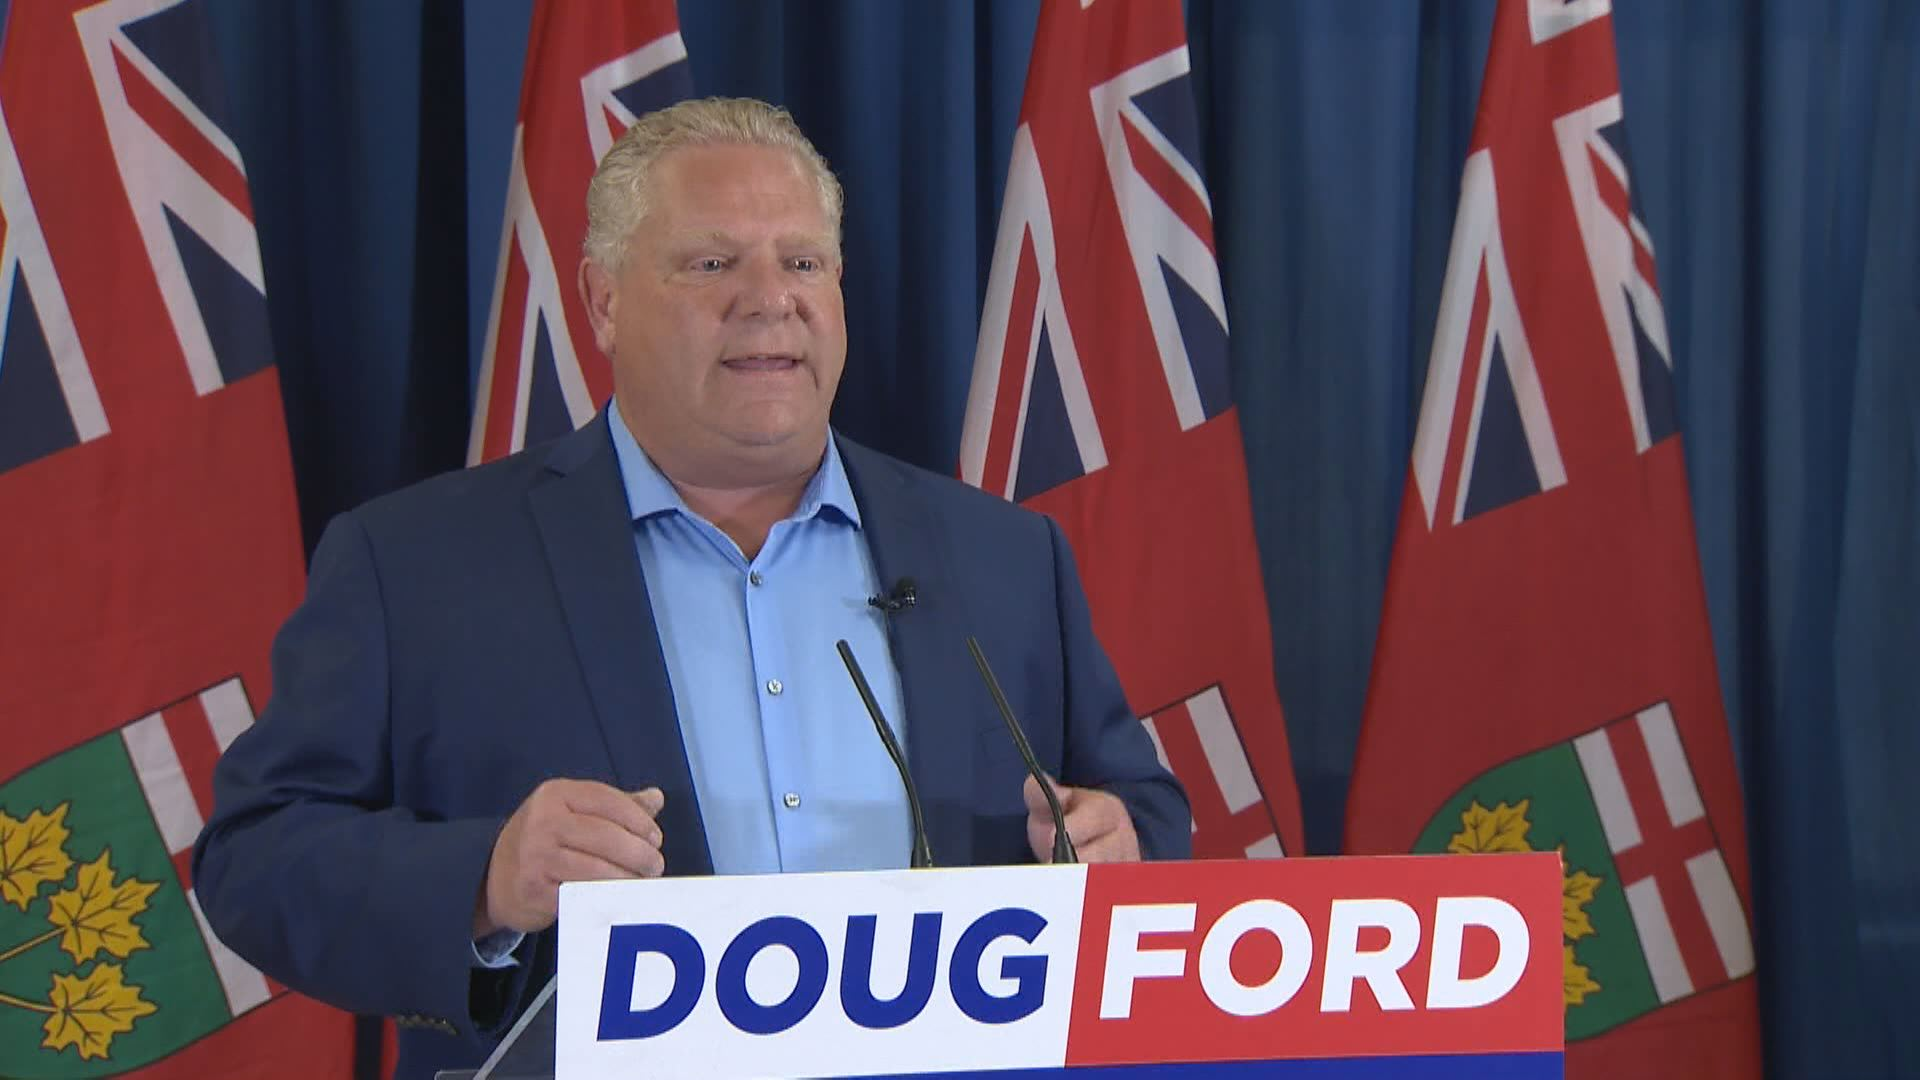 Ford participated in 'bogus' membership sales, intimidated a PC nominee: Liberals claim